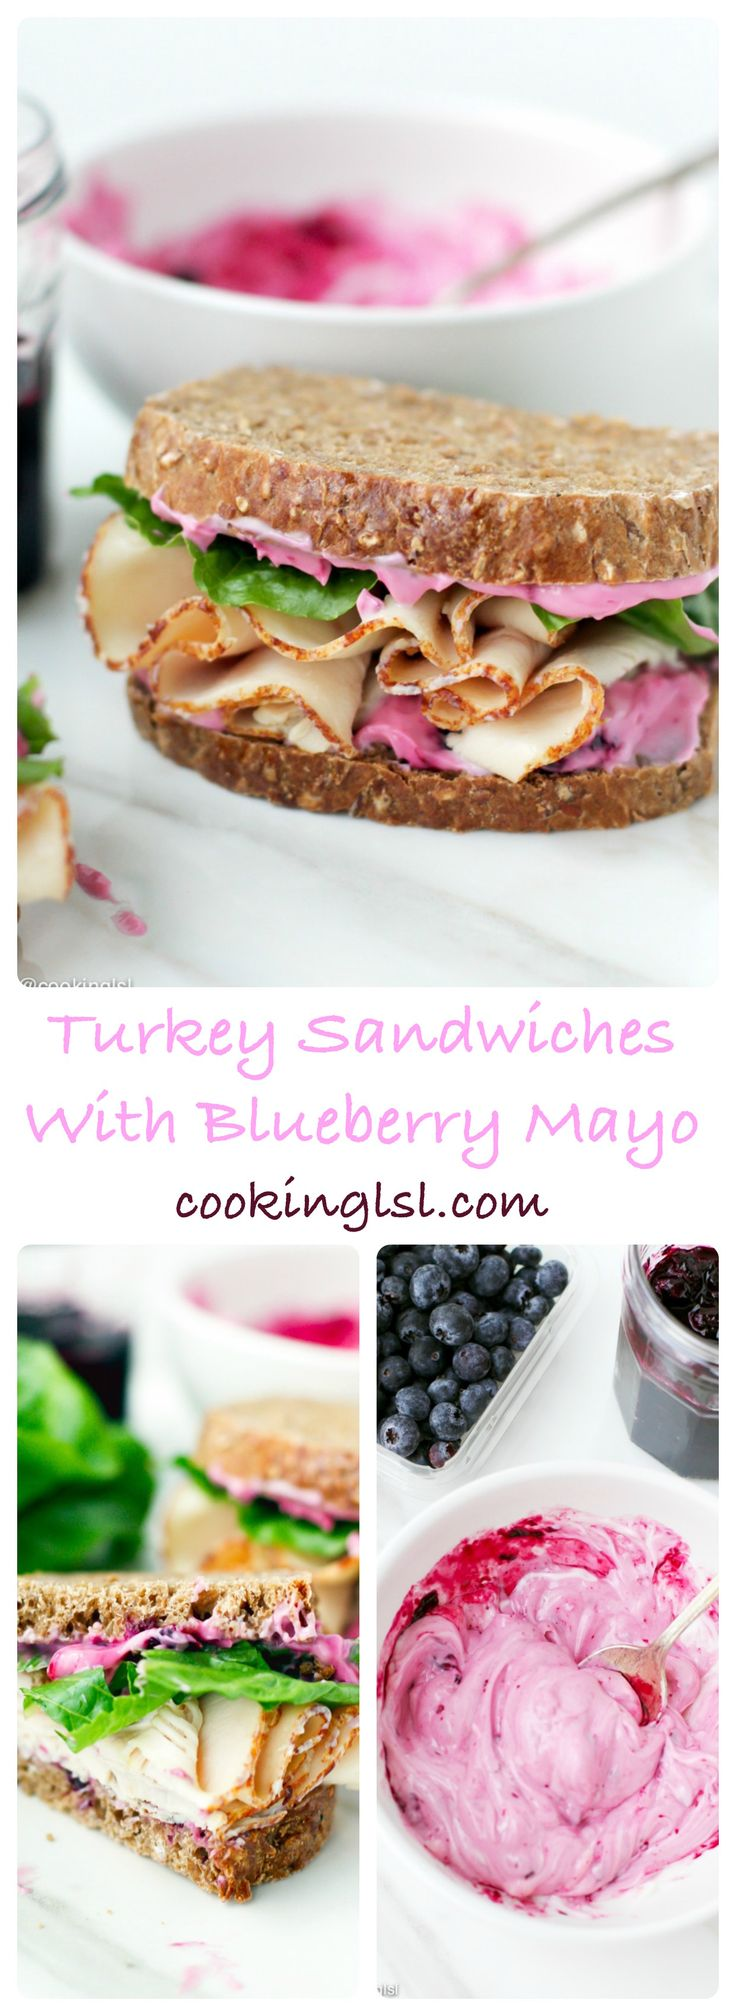 Slices of dense pumpernickel bread with light, slightly sweet blueberry mayo, oven roasted turkey breast and some fresh lettuce. Turkey Sandwiches with Blueberry Mayo